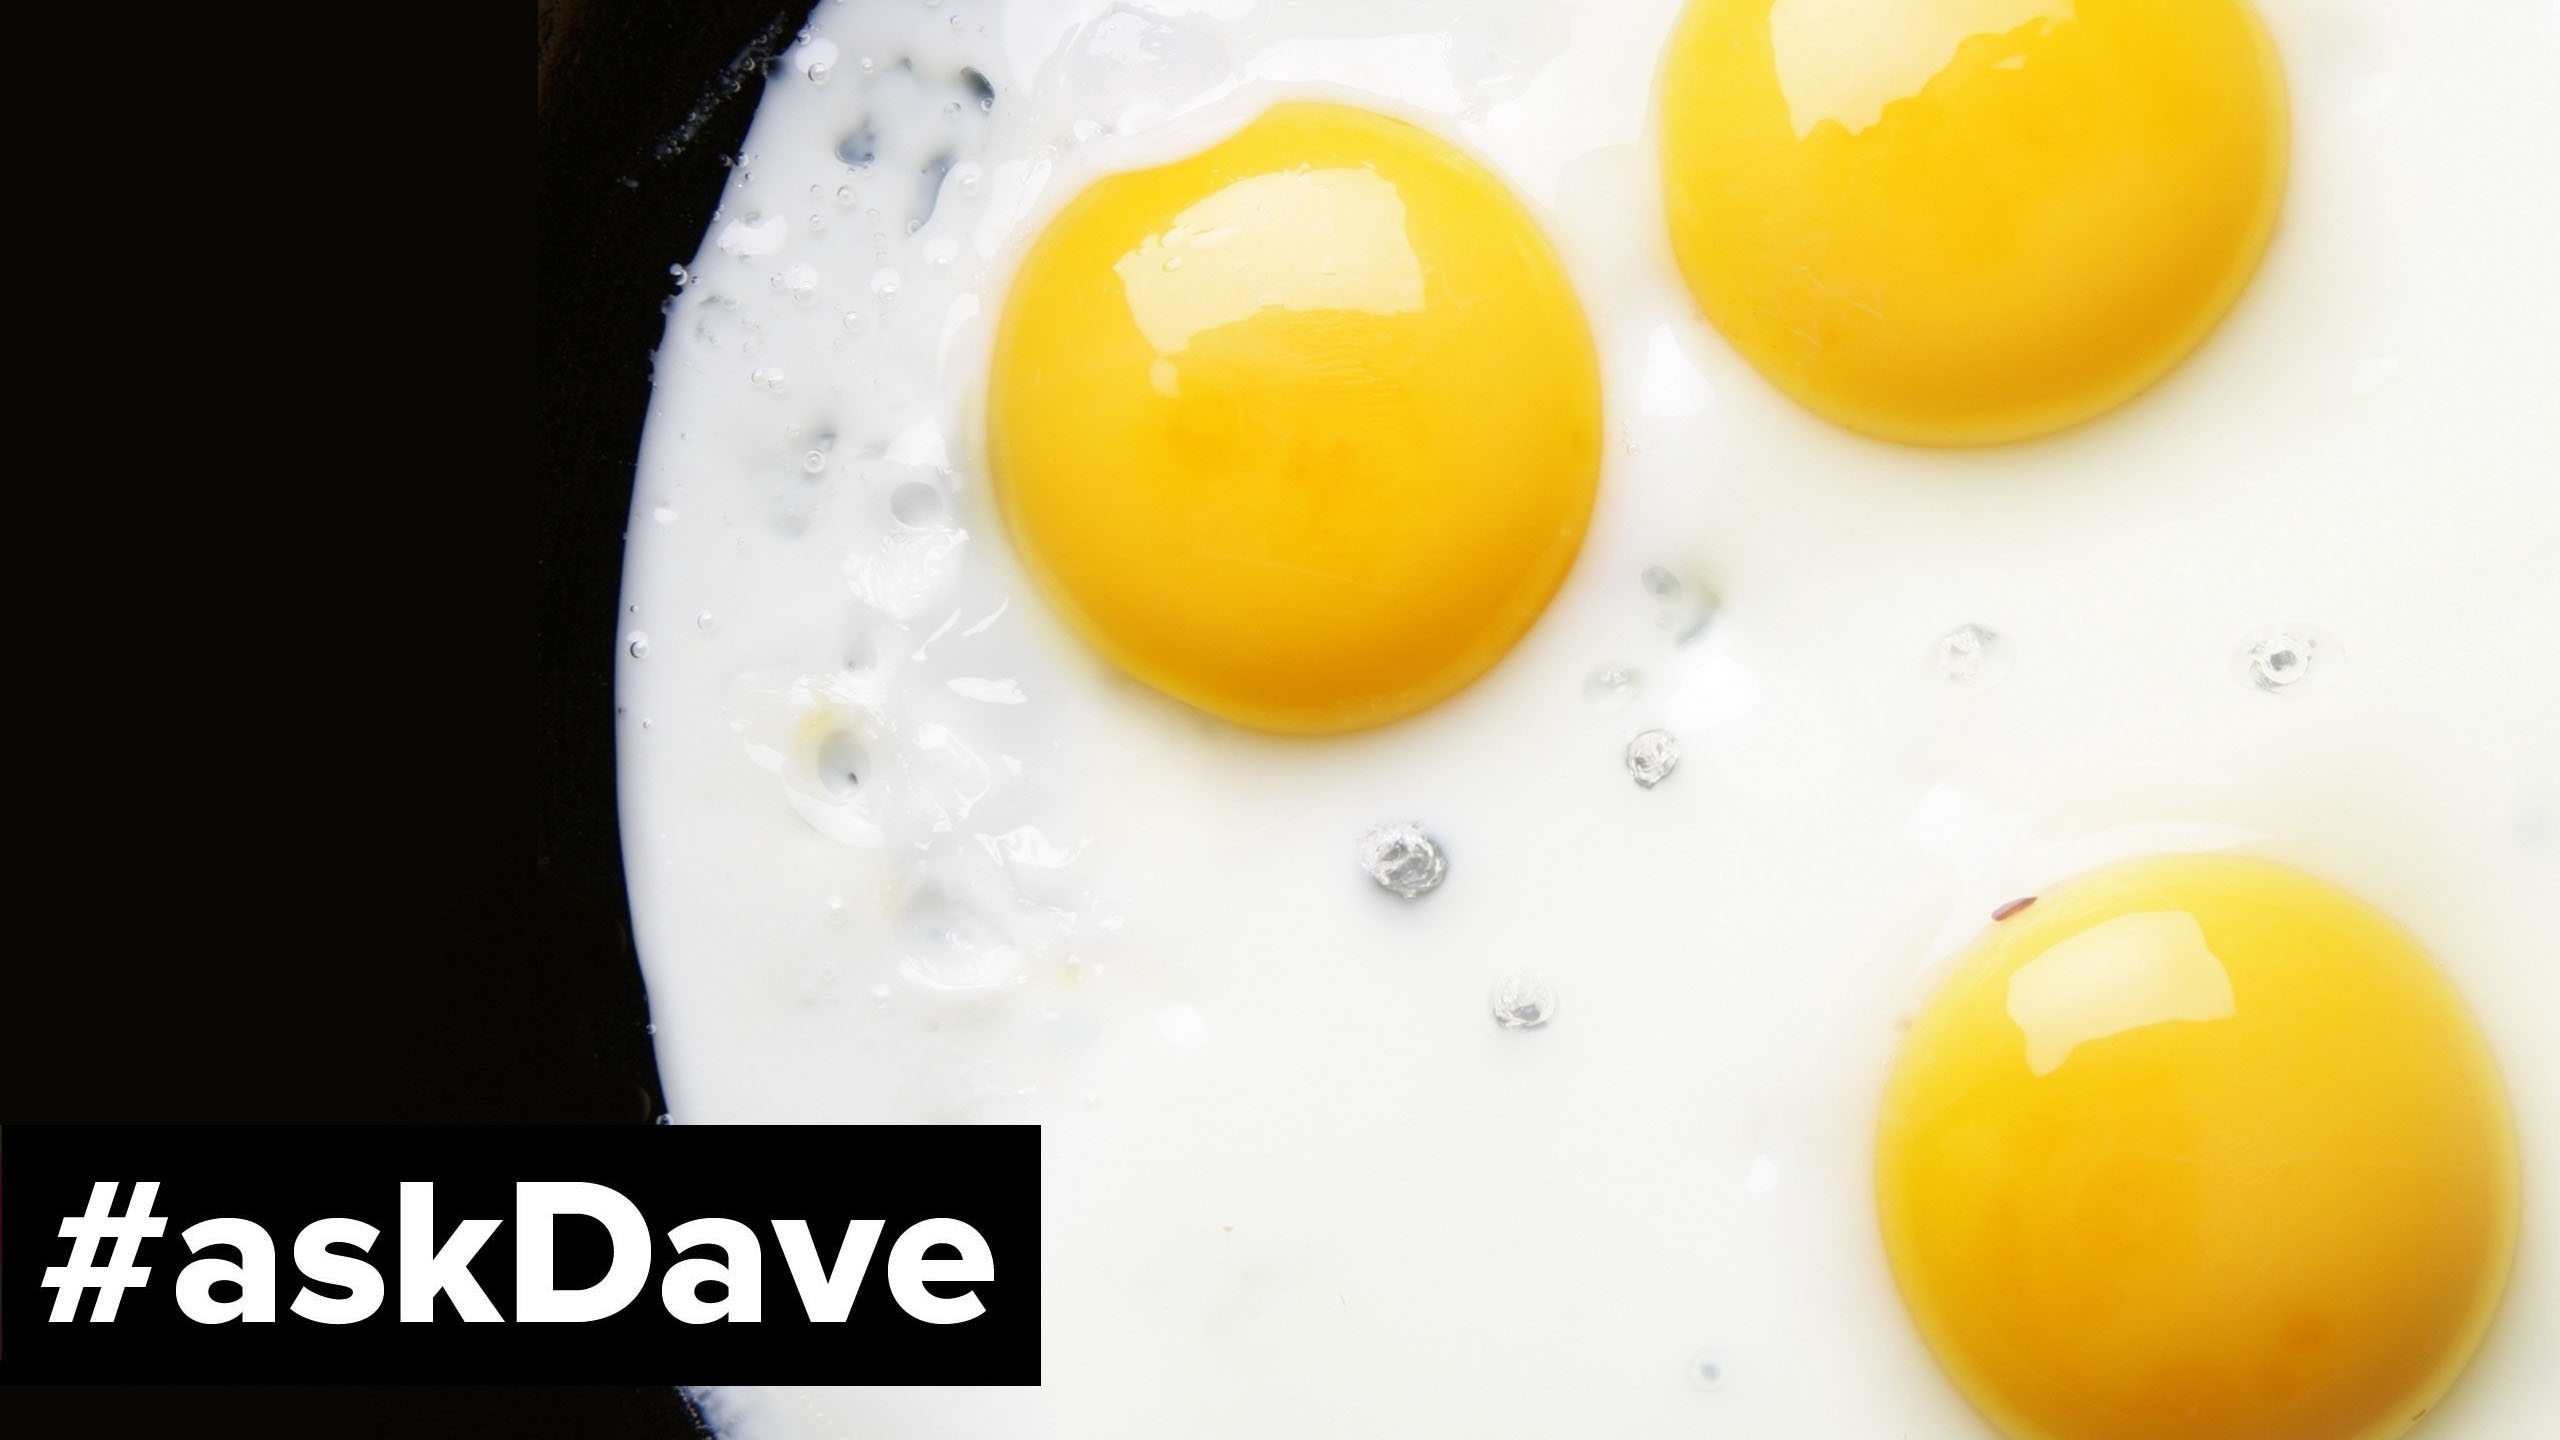 36 eggs a day ask dave